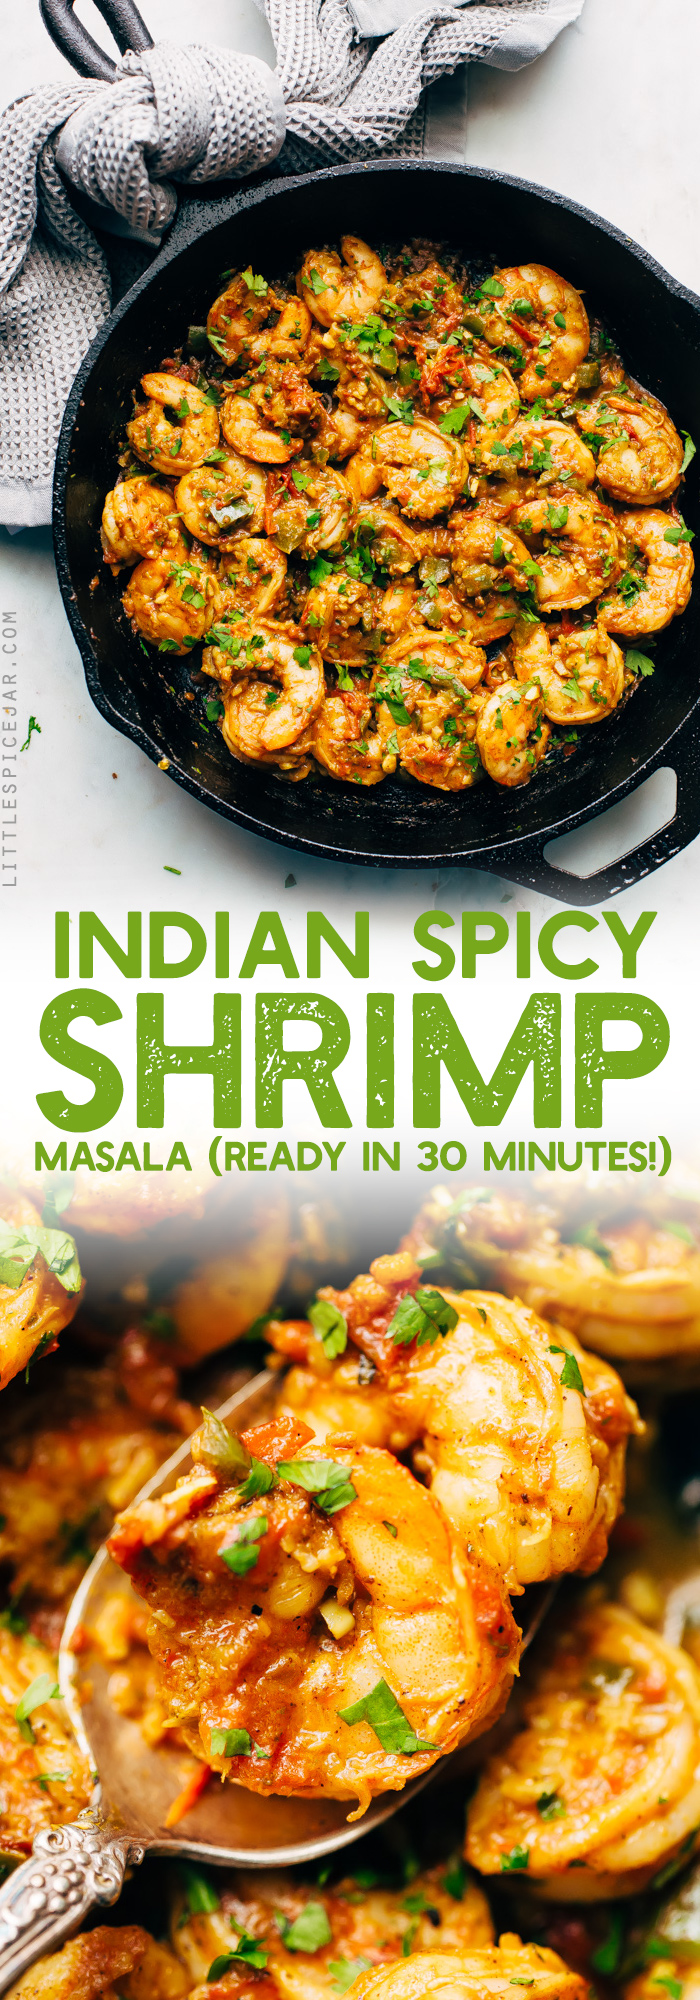 30-Minute Spicy Shrimp Masala - an easy recipe for Indian style shrimp masala. Perfect to serve with naan or basmati rice! #shrimpmasala #indianmasala #masalashrimp #shrimp | Littlespicejar.com